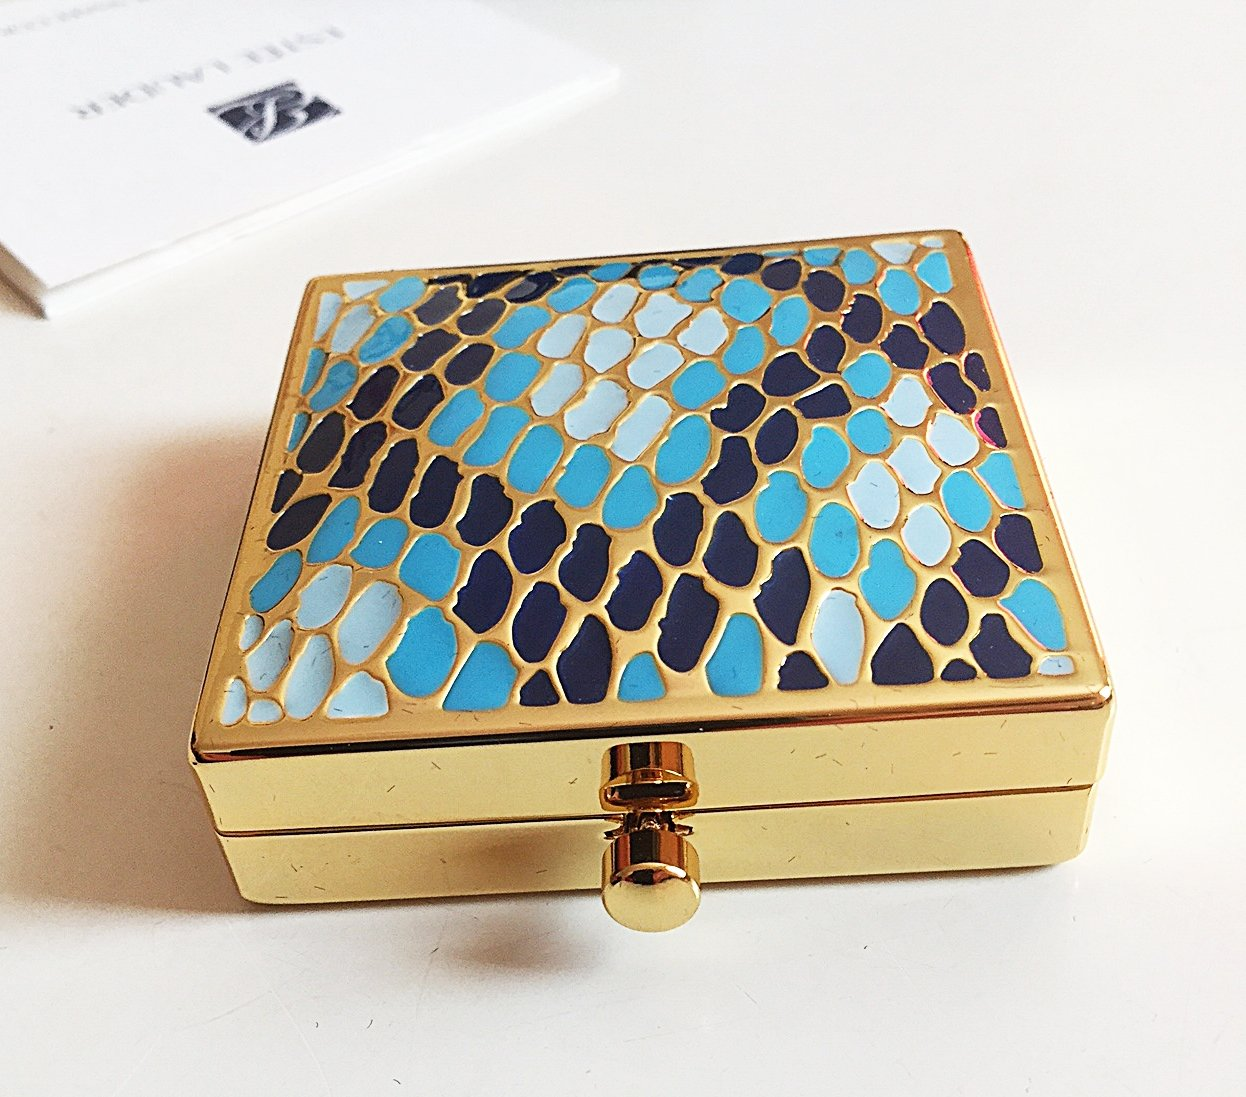 ESTEE LAUDER 2013 YEAR OF THE SNAKE Powder Compact Chinese Zodiac Limited RARE